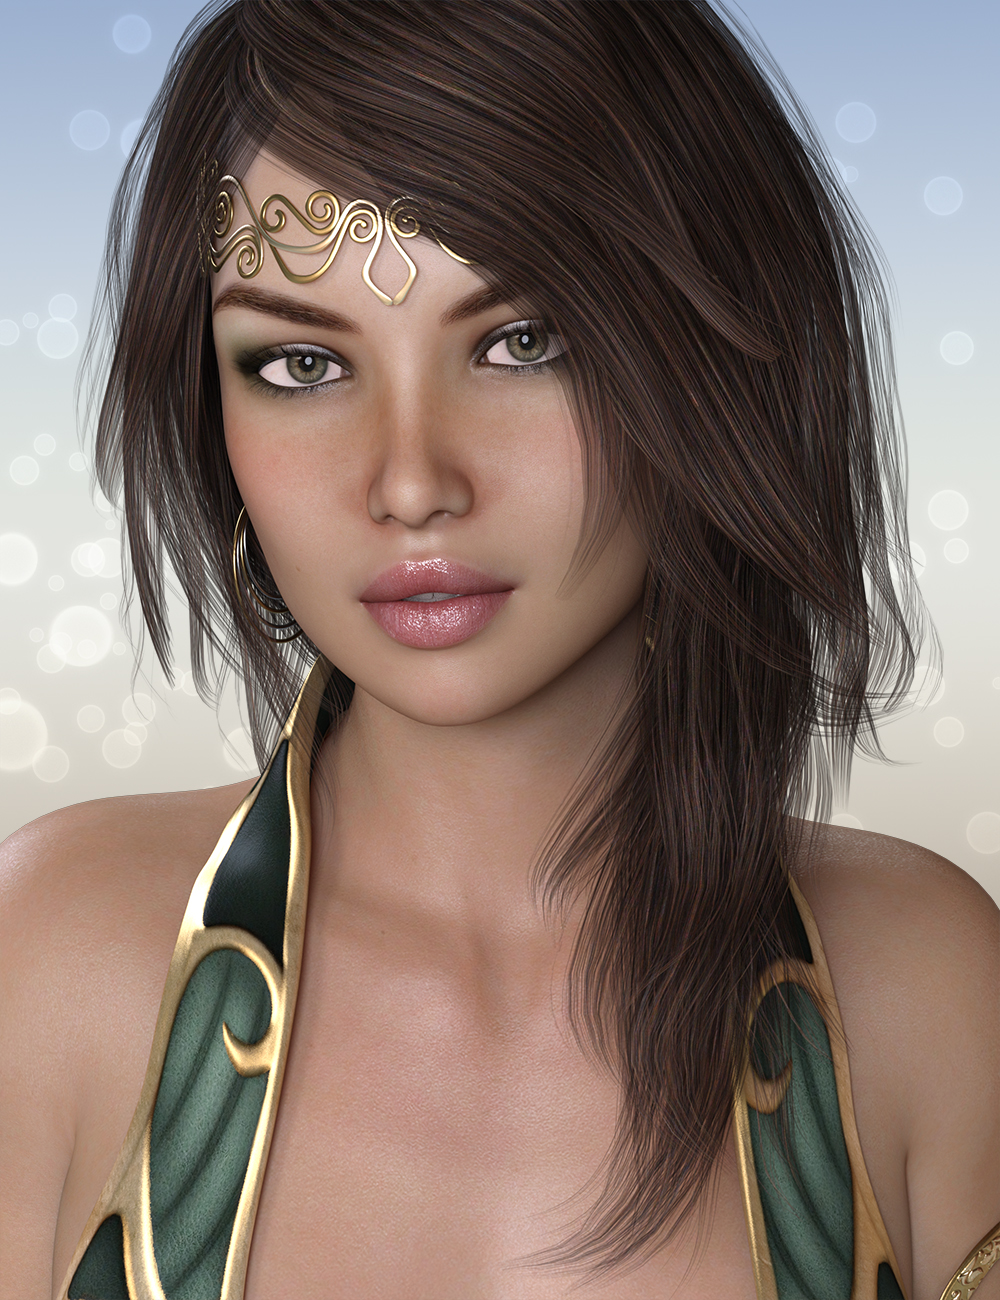 SS Janya for Mei Lin 7 by: 3DSublimeProductionsSabby, 3D Models by Daz 3D